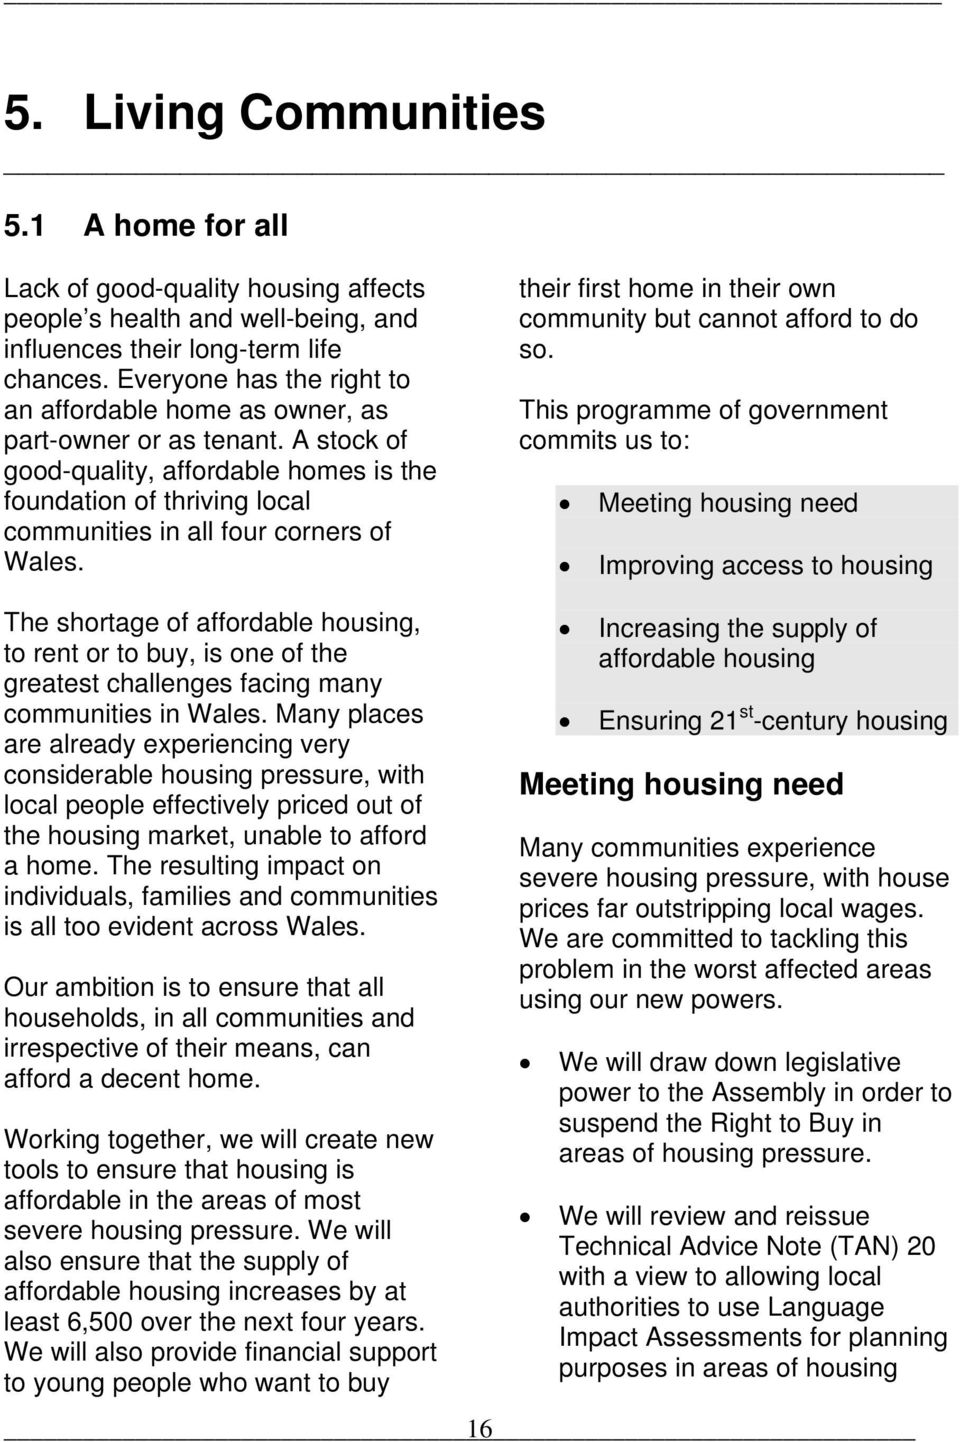 A stock of good-quality, affordable homes is the foundation of thriving local communities in all four corners of Wales. their first home in their own community but cannot afford to do so.